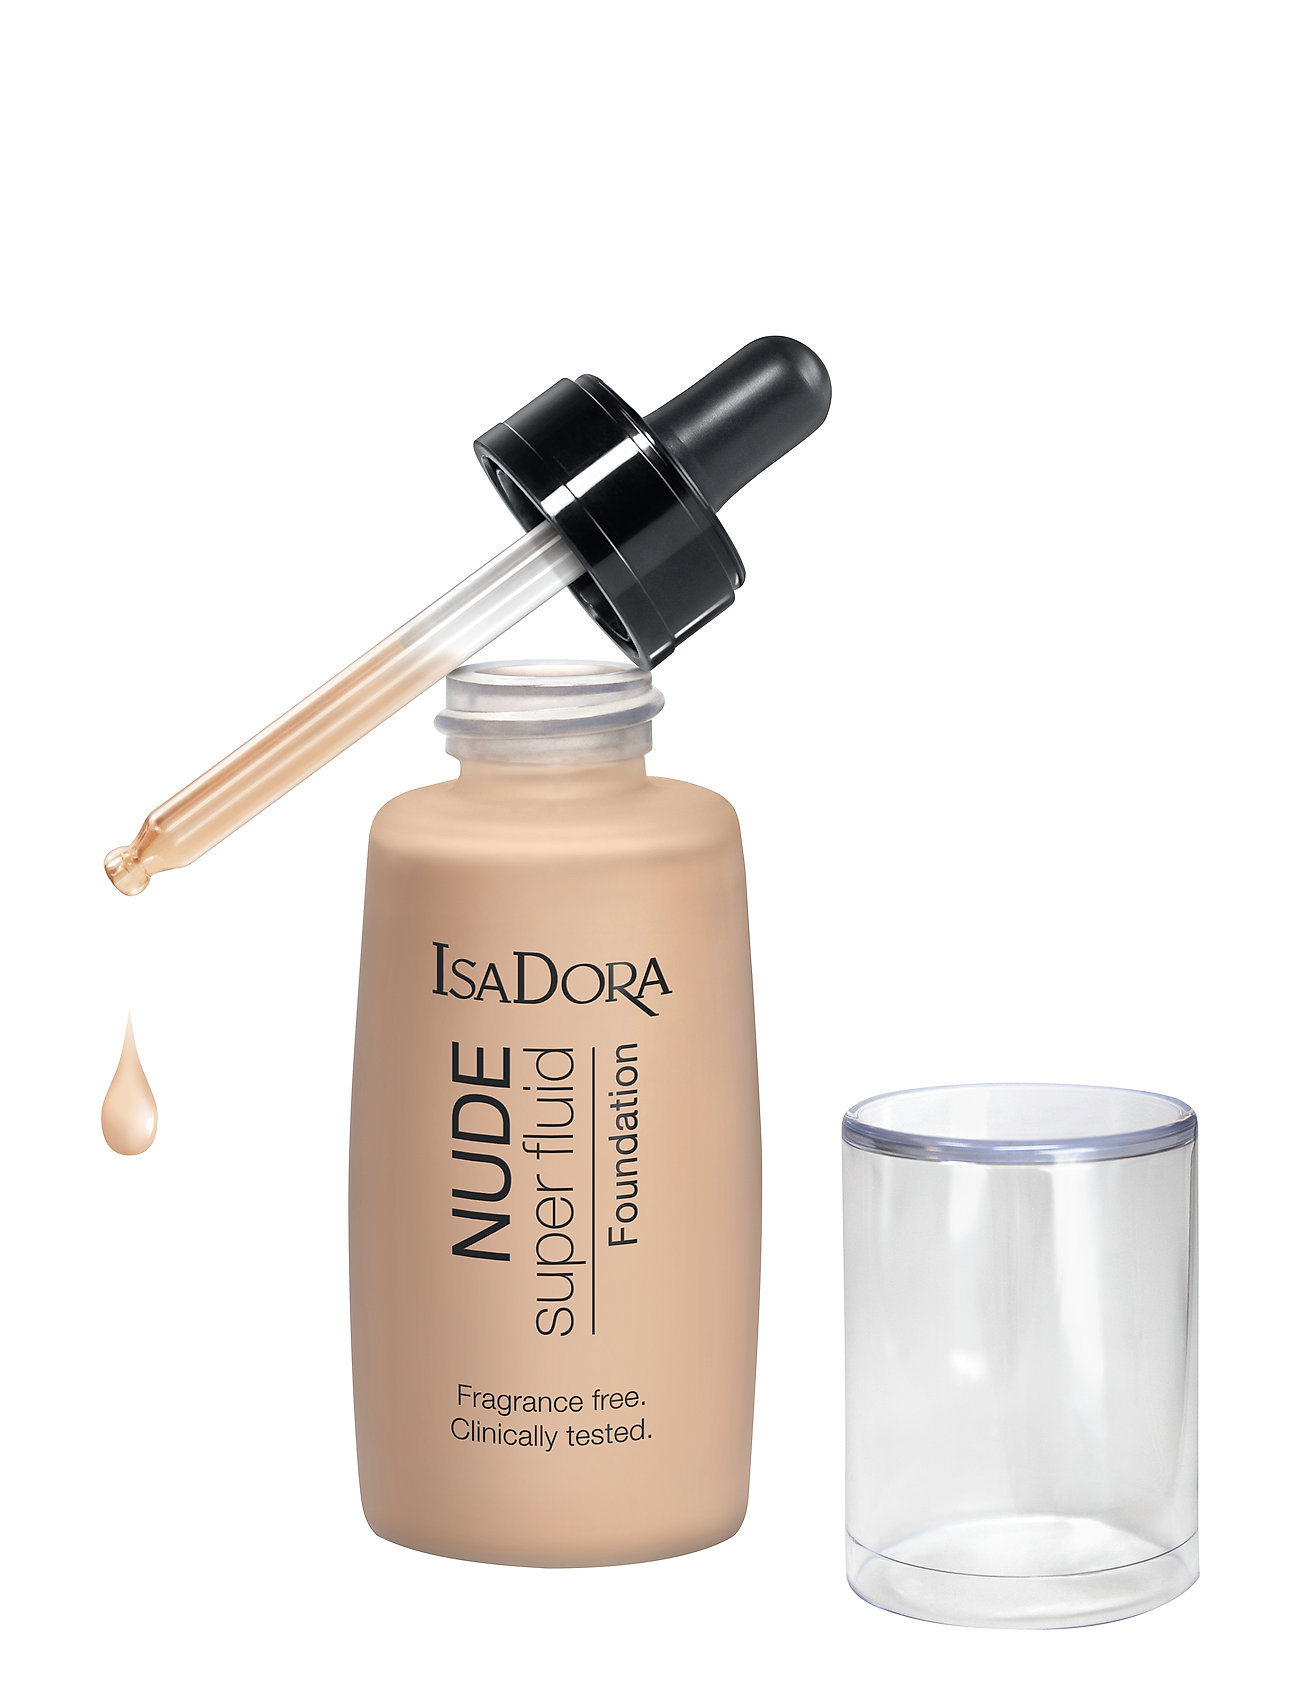 Image of Nude Fluid Foundation 10 Nude Porcelain Foundation Makeup Isadora (3452091281)